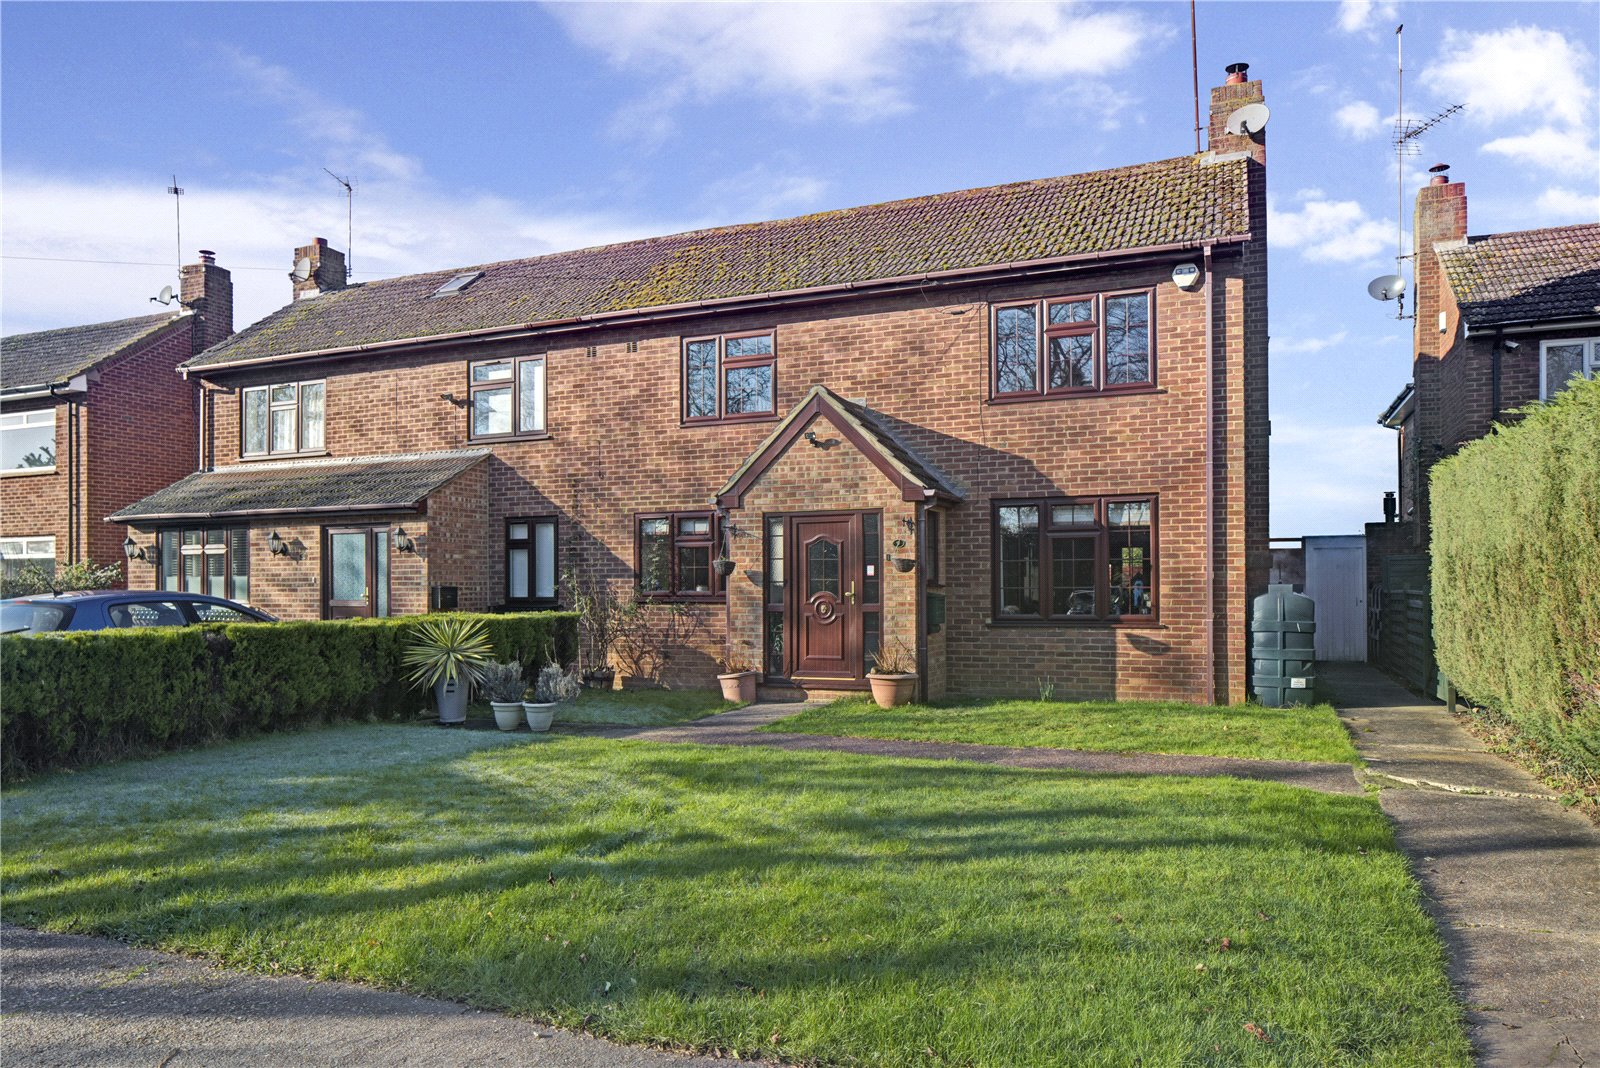 3 Bedrooms Semi Detached House for sale in Church View, White Waltham, Maidenhead, Berkshire, SL6